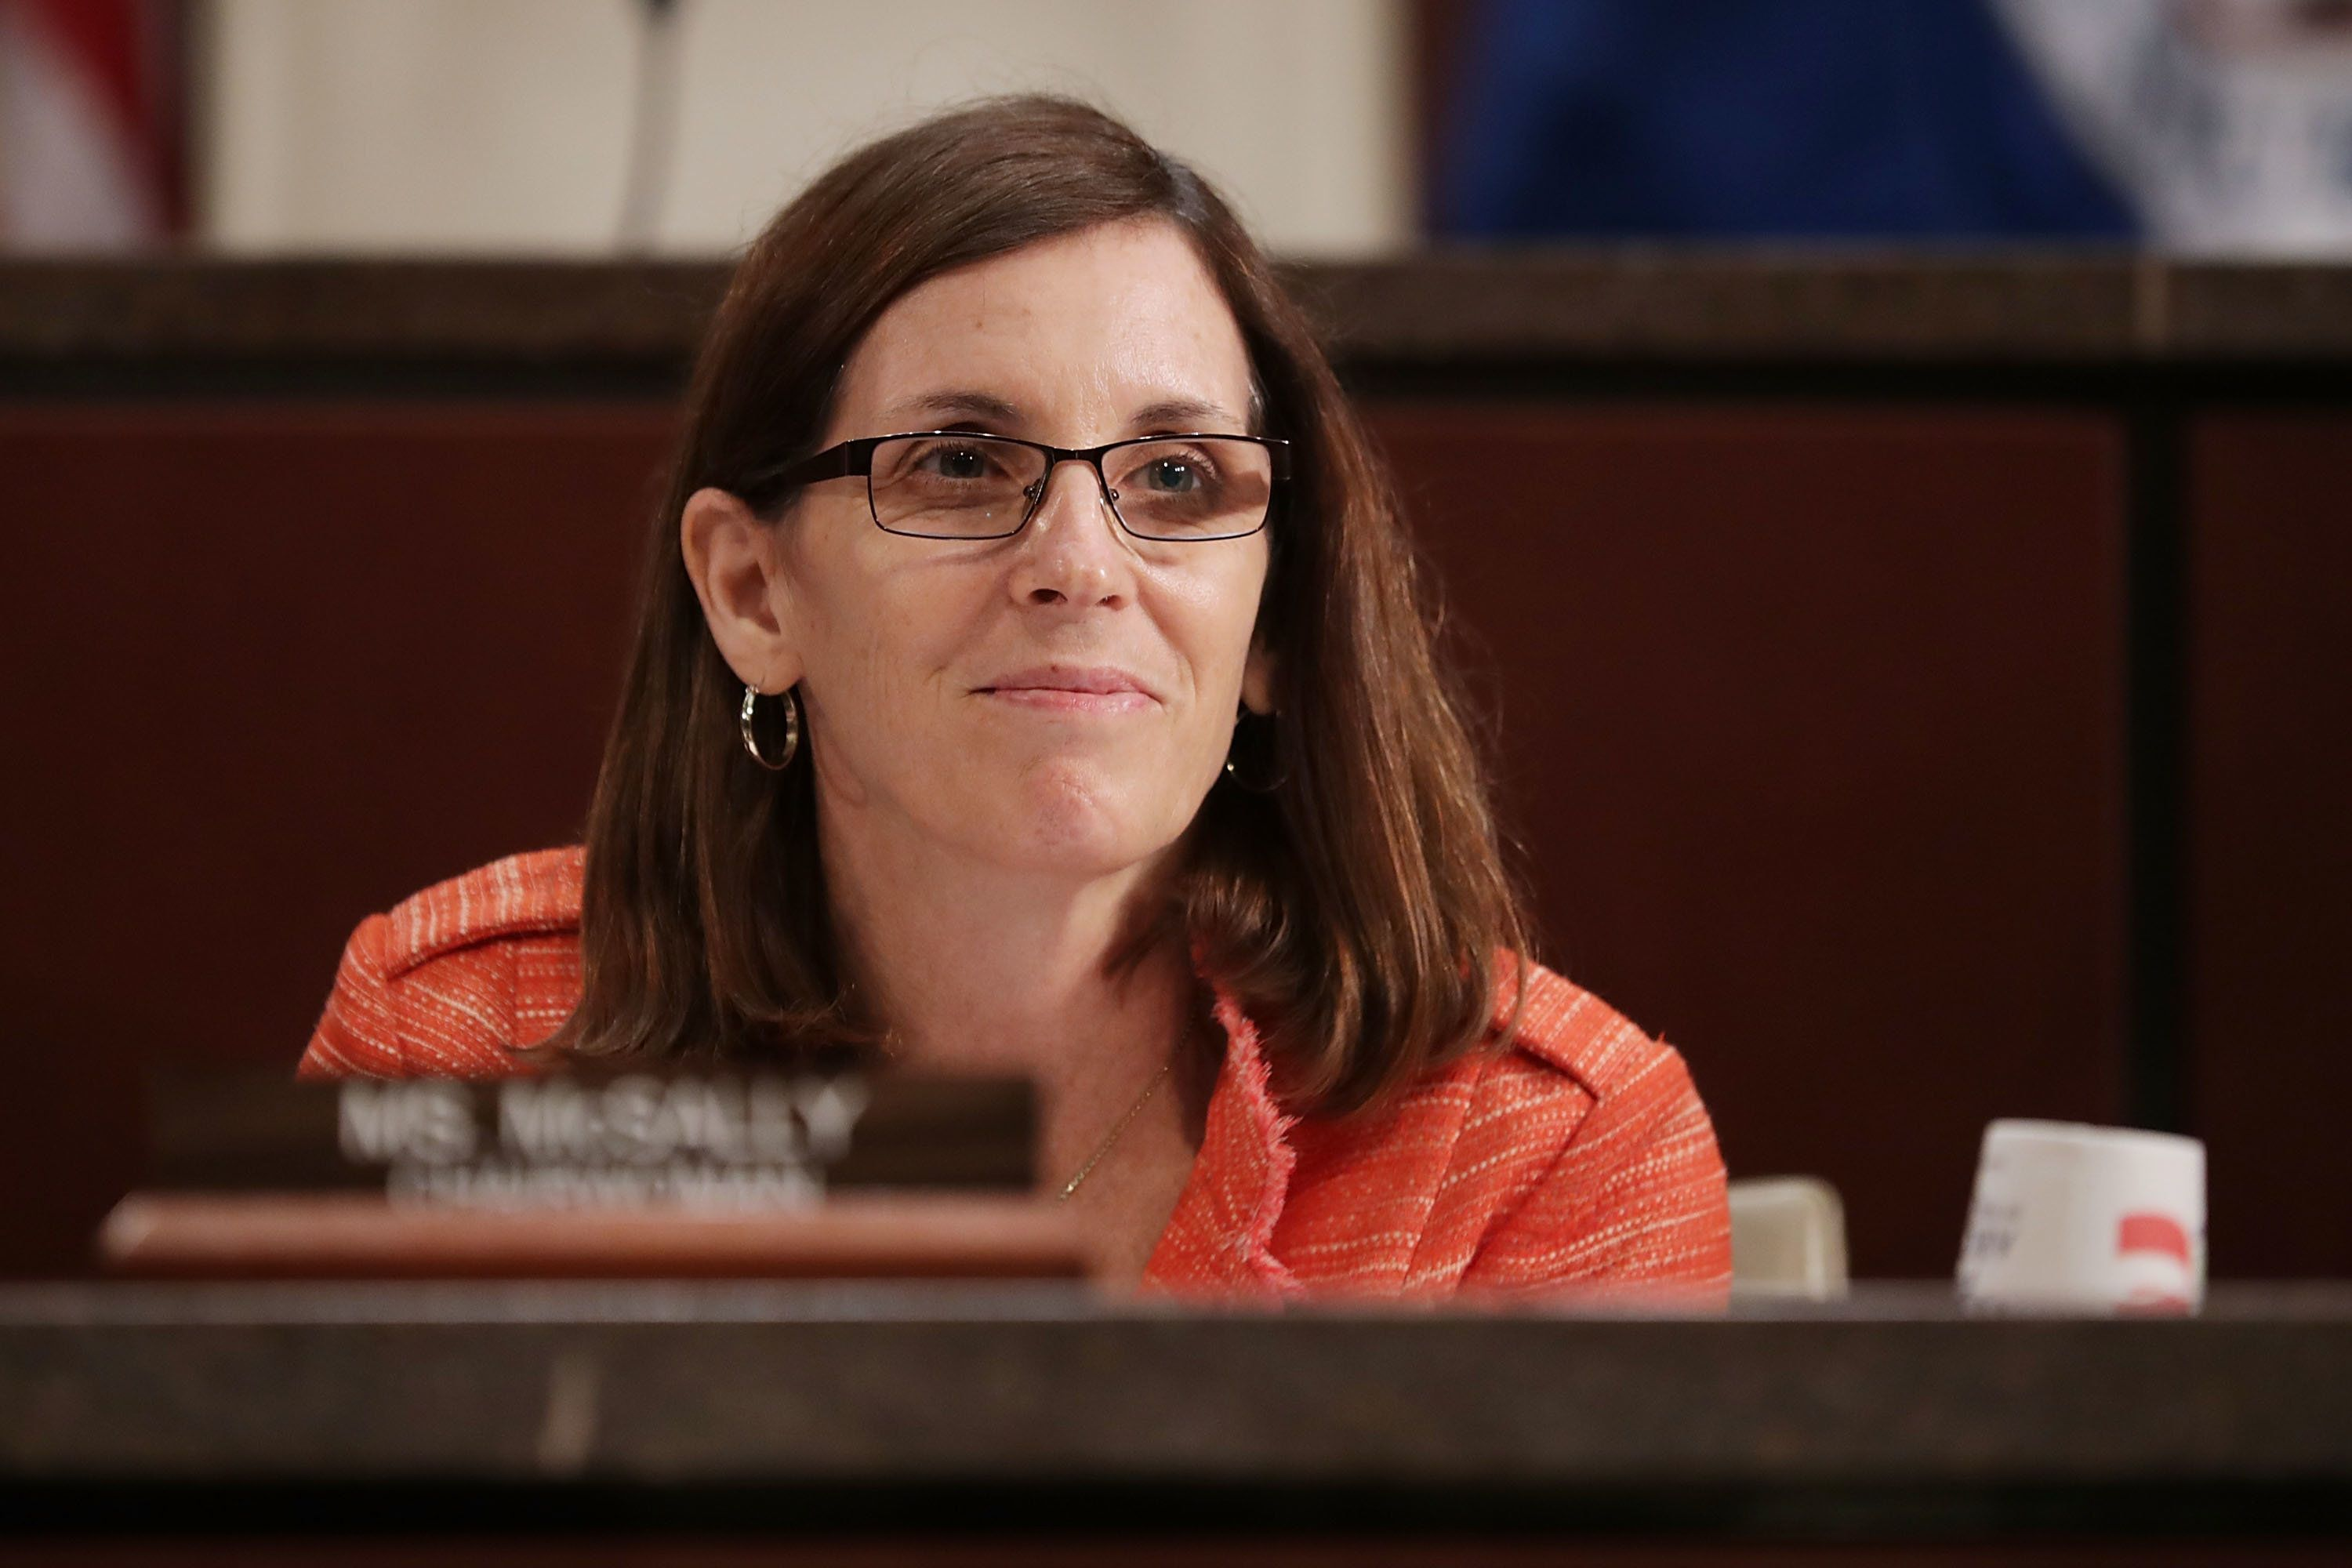 Arizona Rep. Martha McSally has tamed what had the makings of a rambunctious GOP Senate primary by aligning herself with Pres